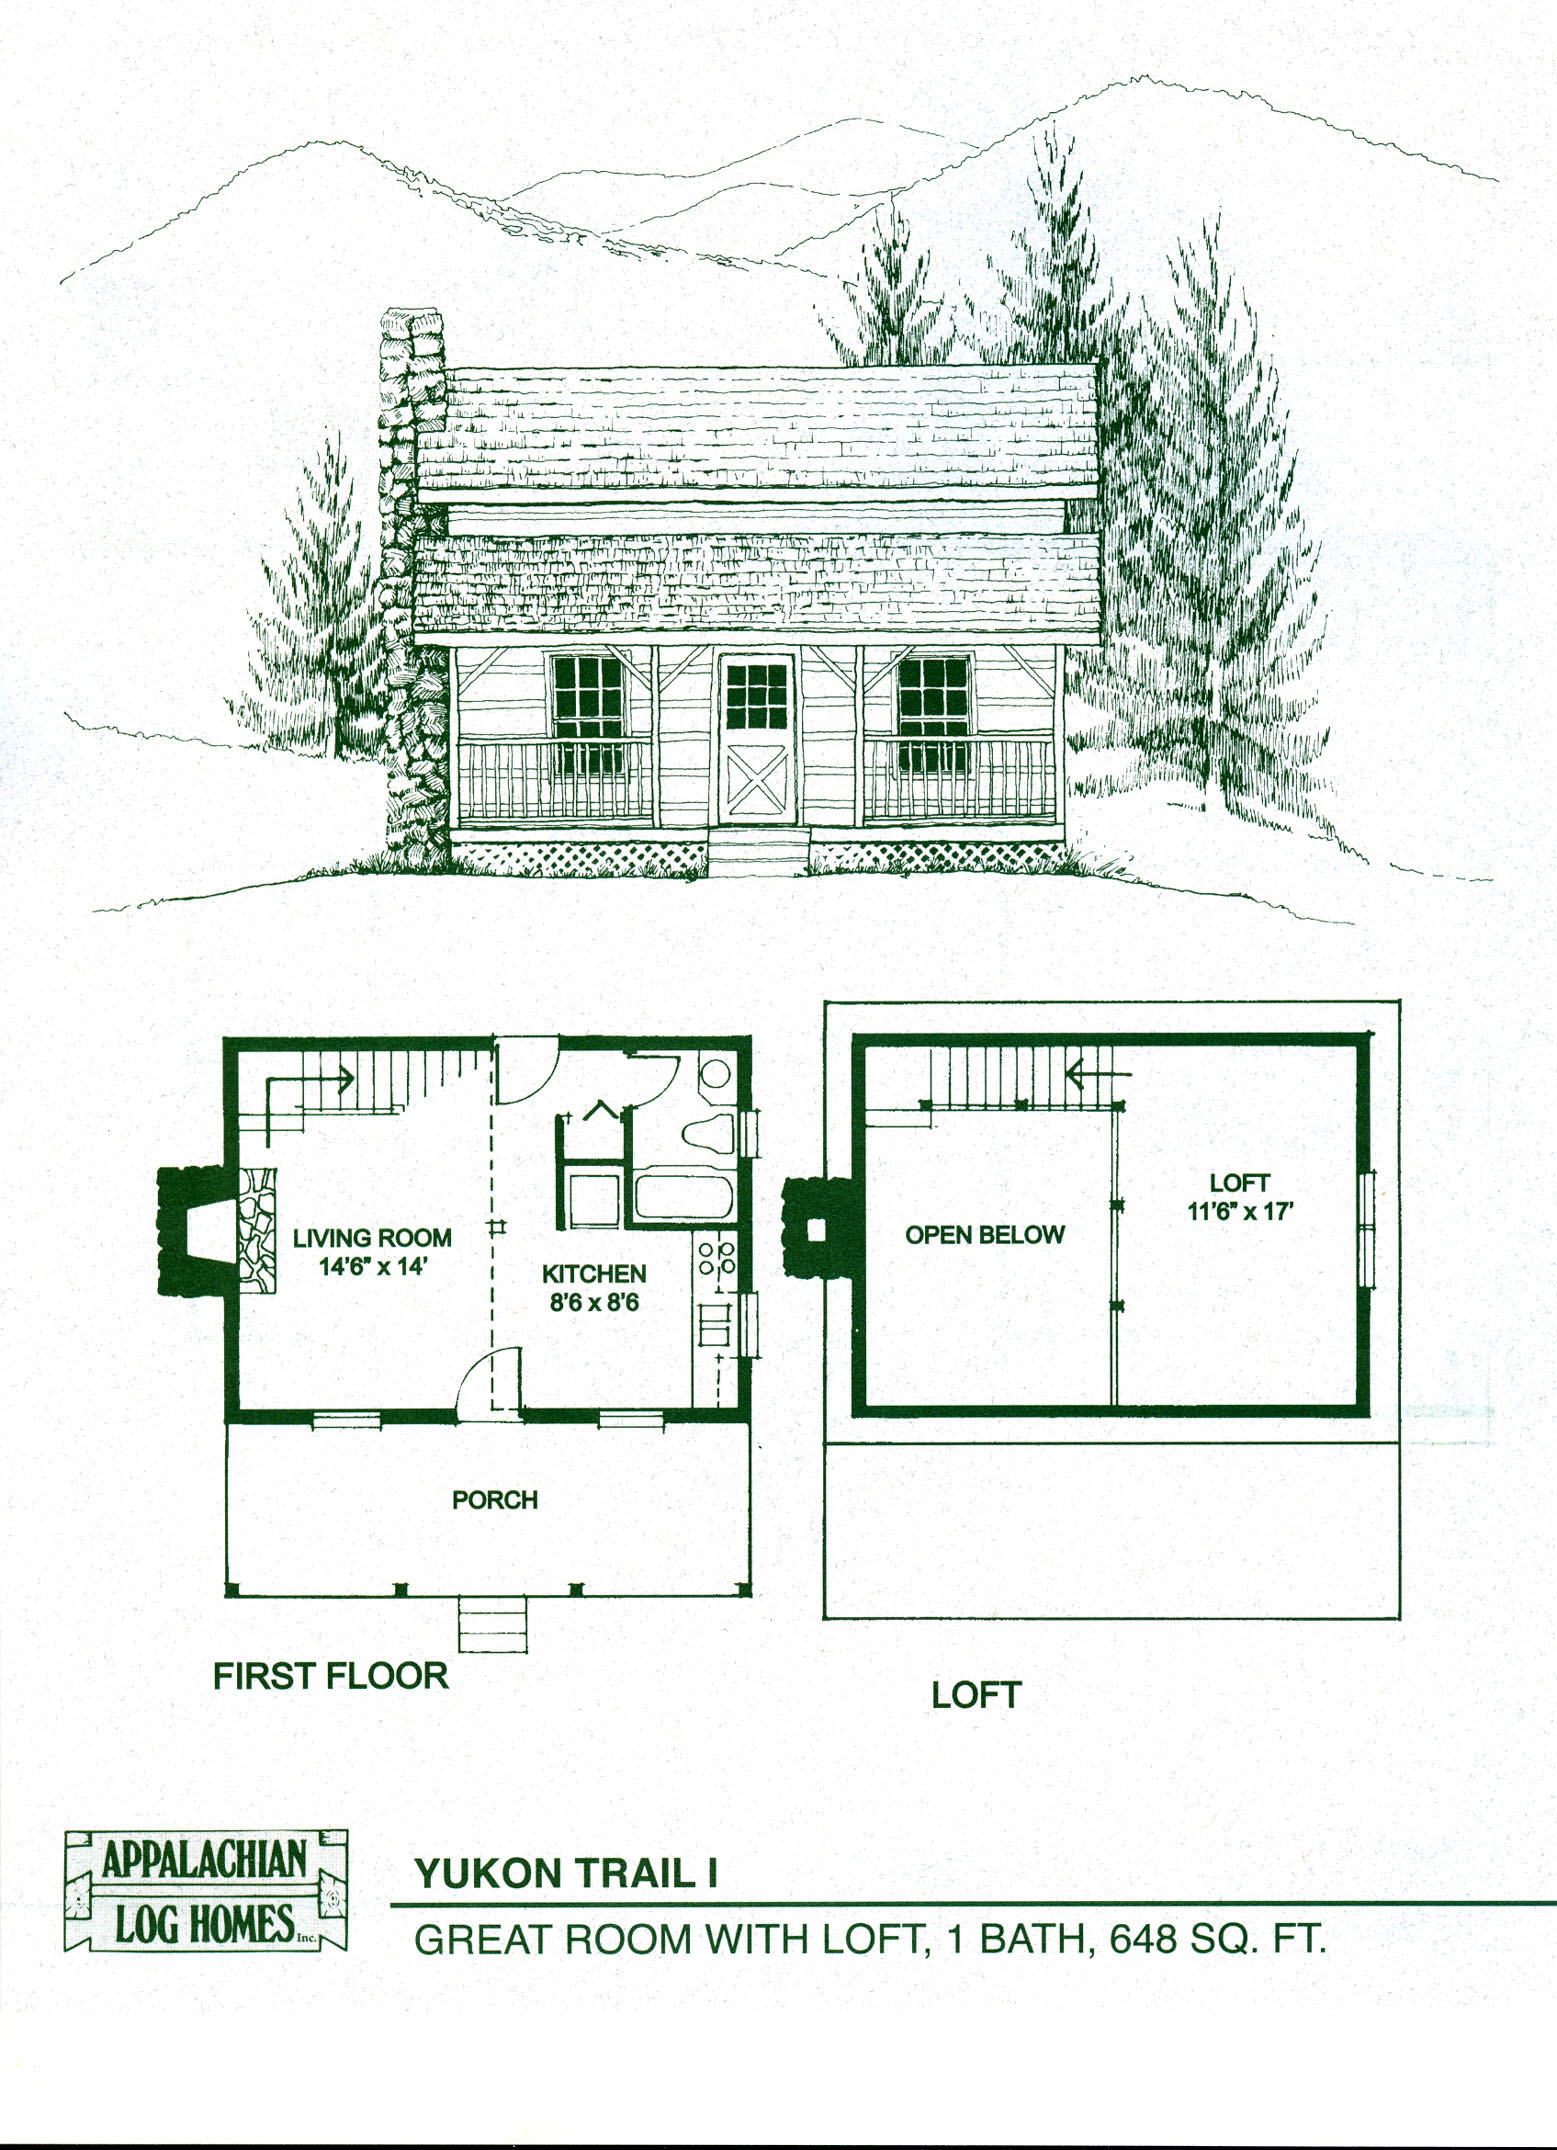 Small cottage home designs 19463 hd wallpapers background for Small cottage house plans